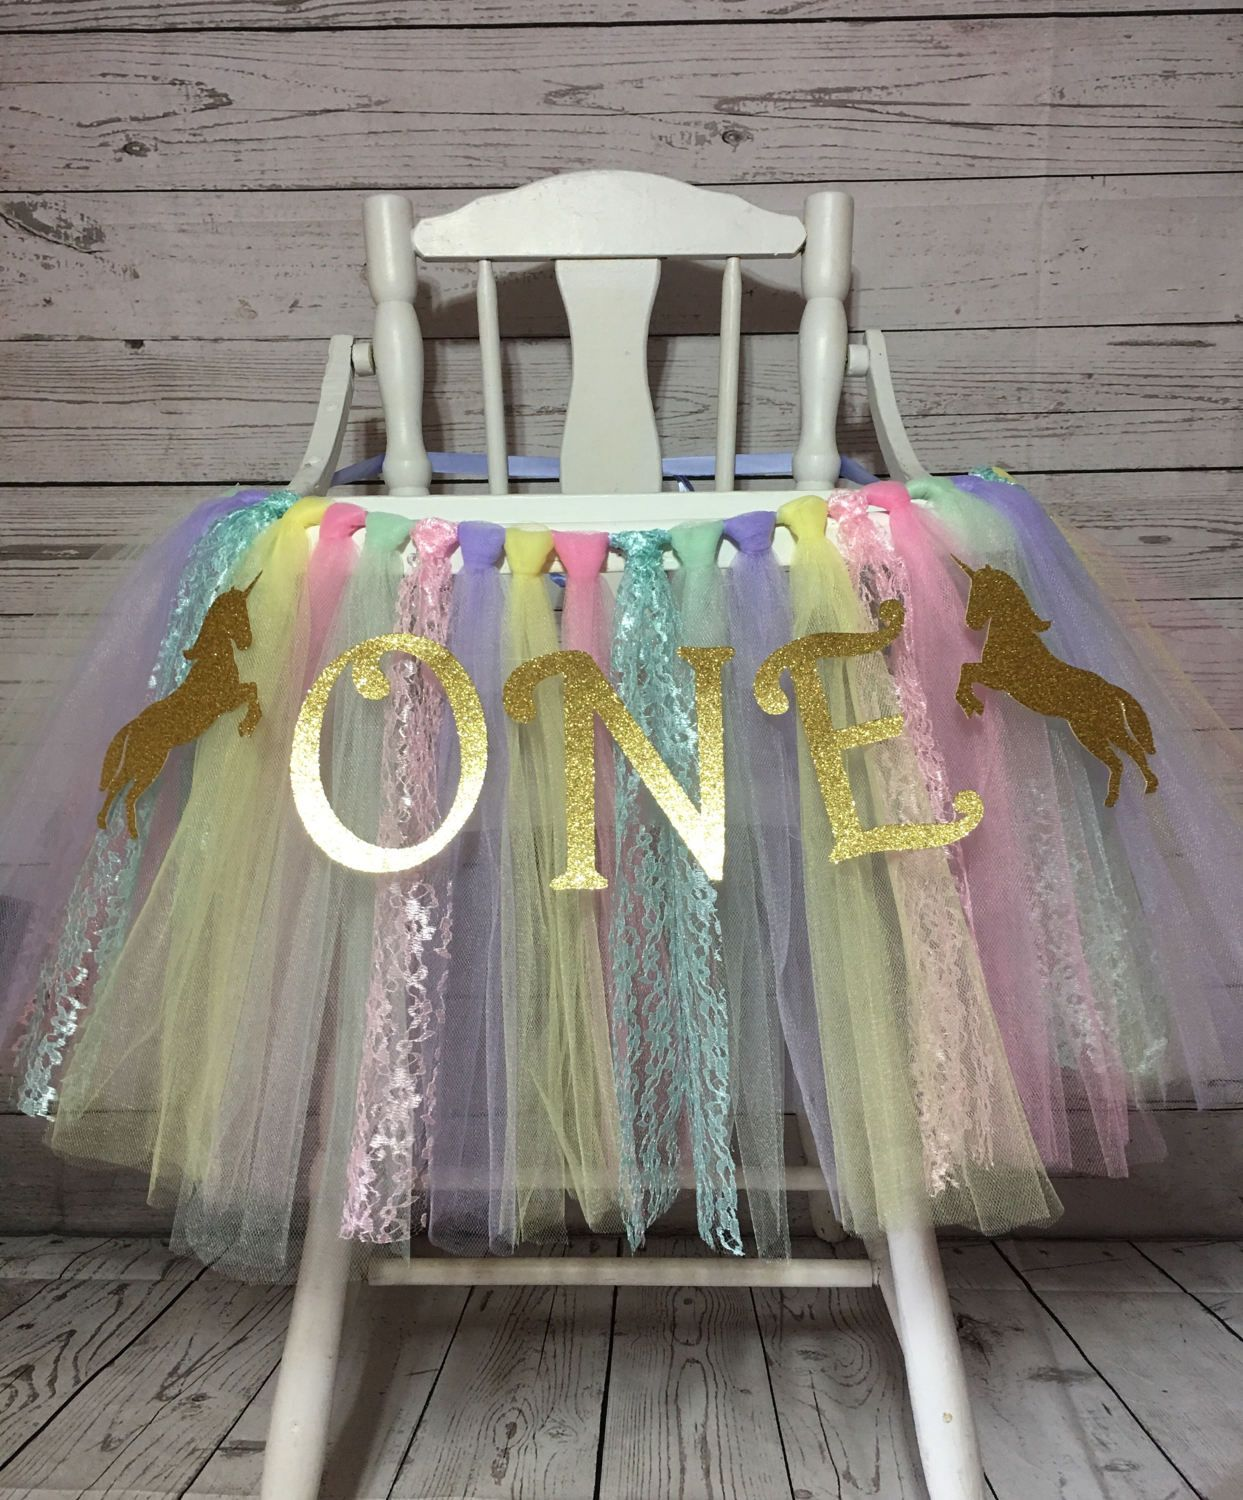 Unicorn High Chair Tutu First Birthday Smash Cake Decorations Highchair Shirt Skirt By AvaryMaeInspirations